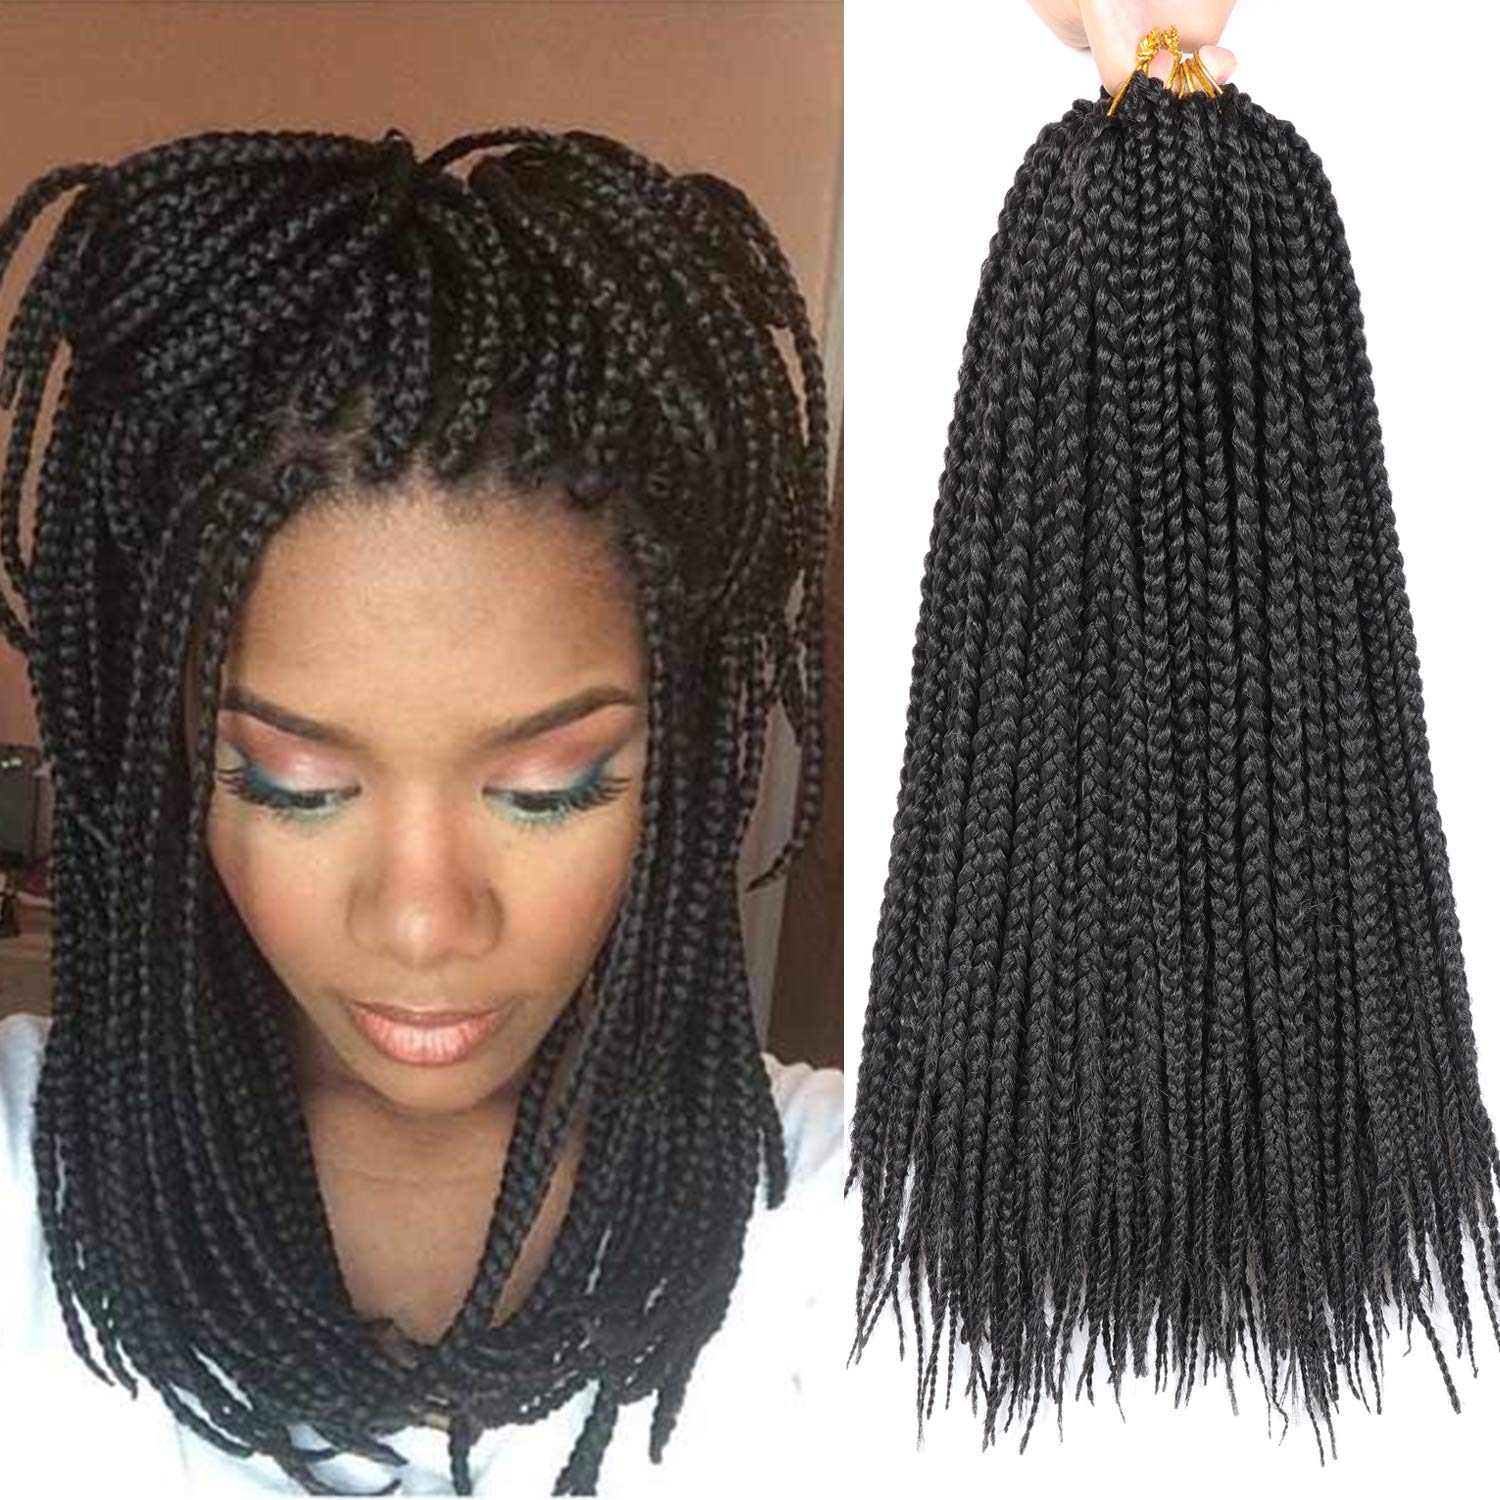 Amazon Com 7 Packs 14 Inch Goddess Box Braids Crochet Hair Short Prelooped Crochet Hair Crochet Braids Box Braid Crochet Hair Crochet Braids Hair For Black Women Jumpo Braiding Hair 14 Inch 1b Beauty